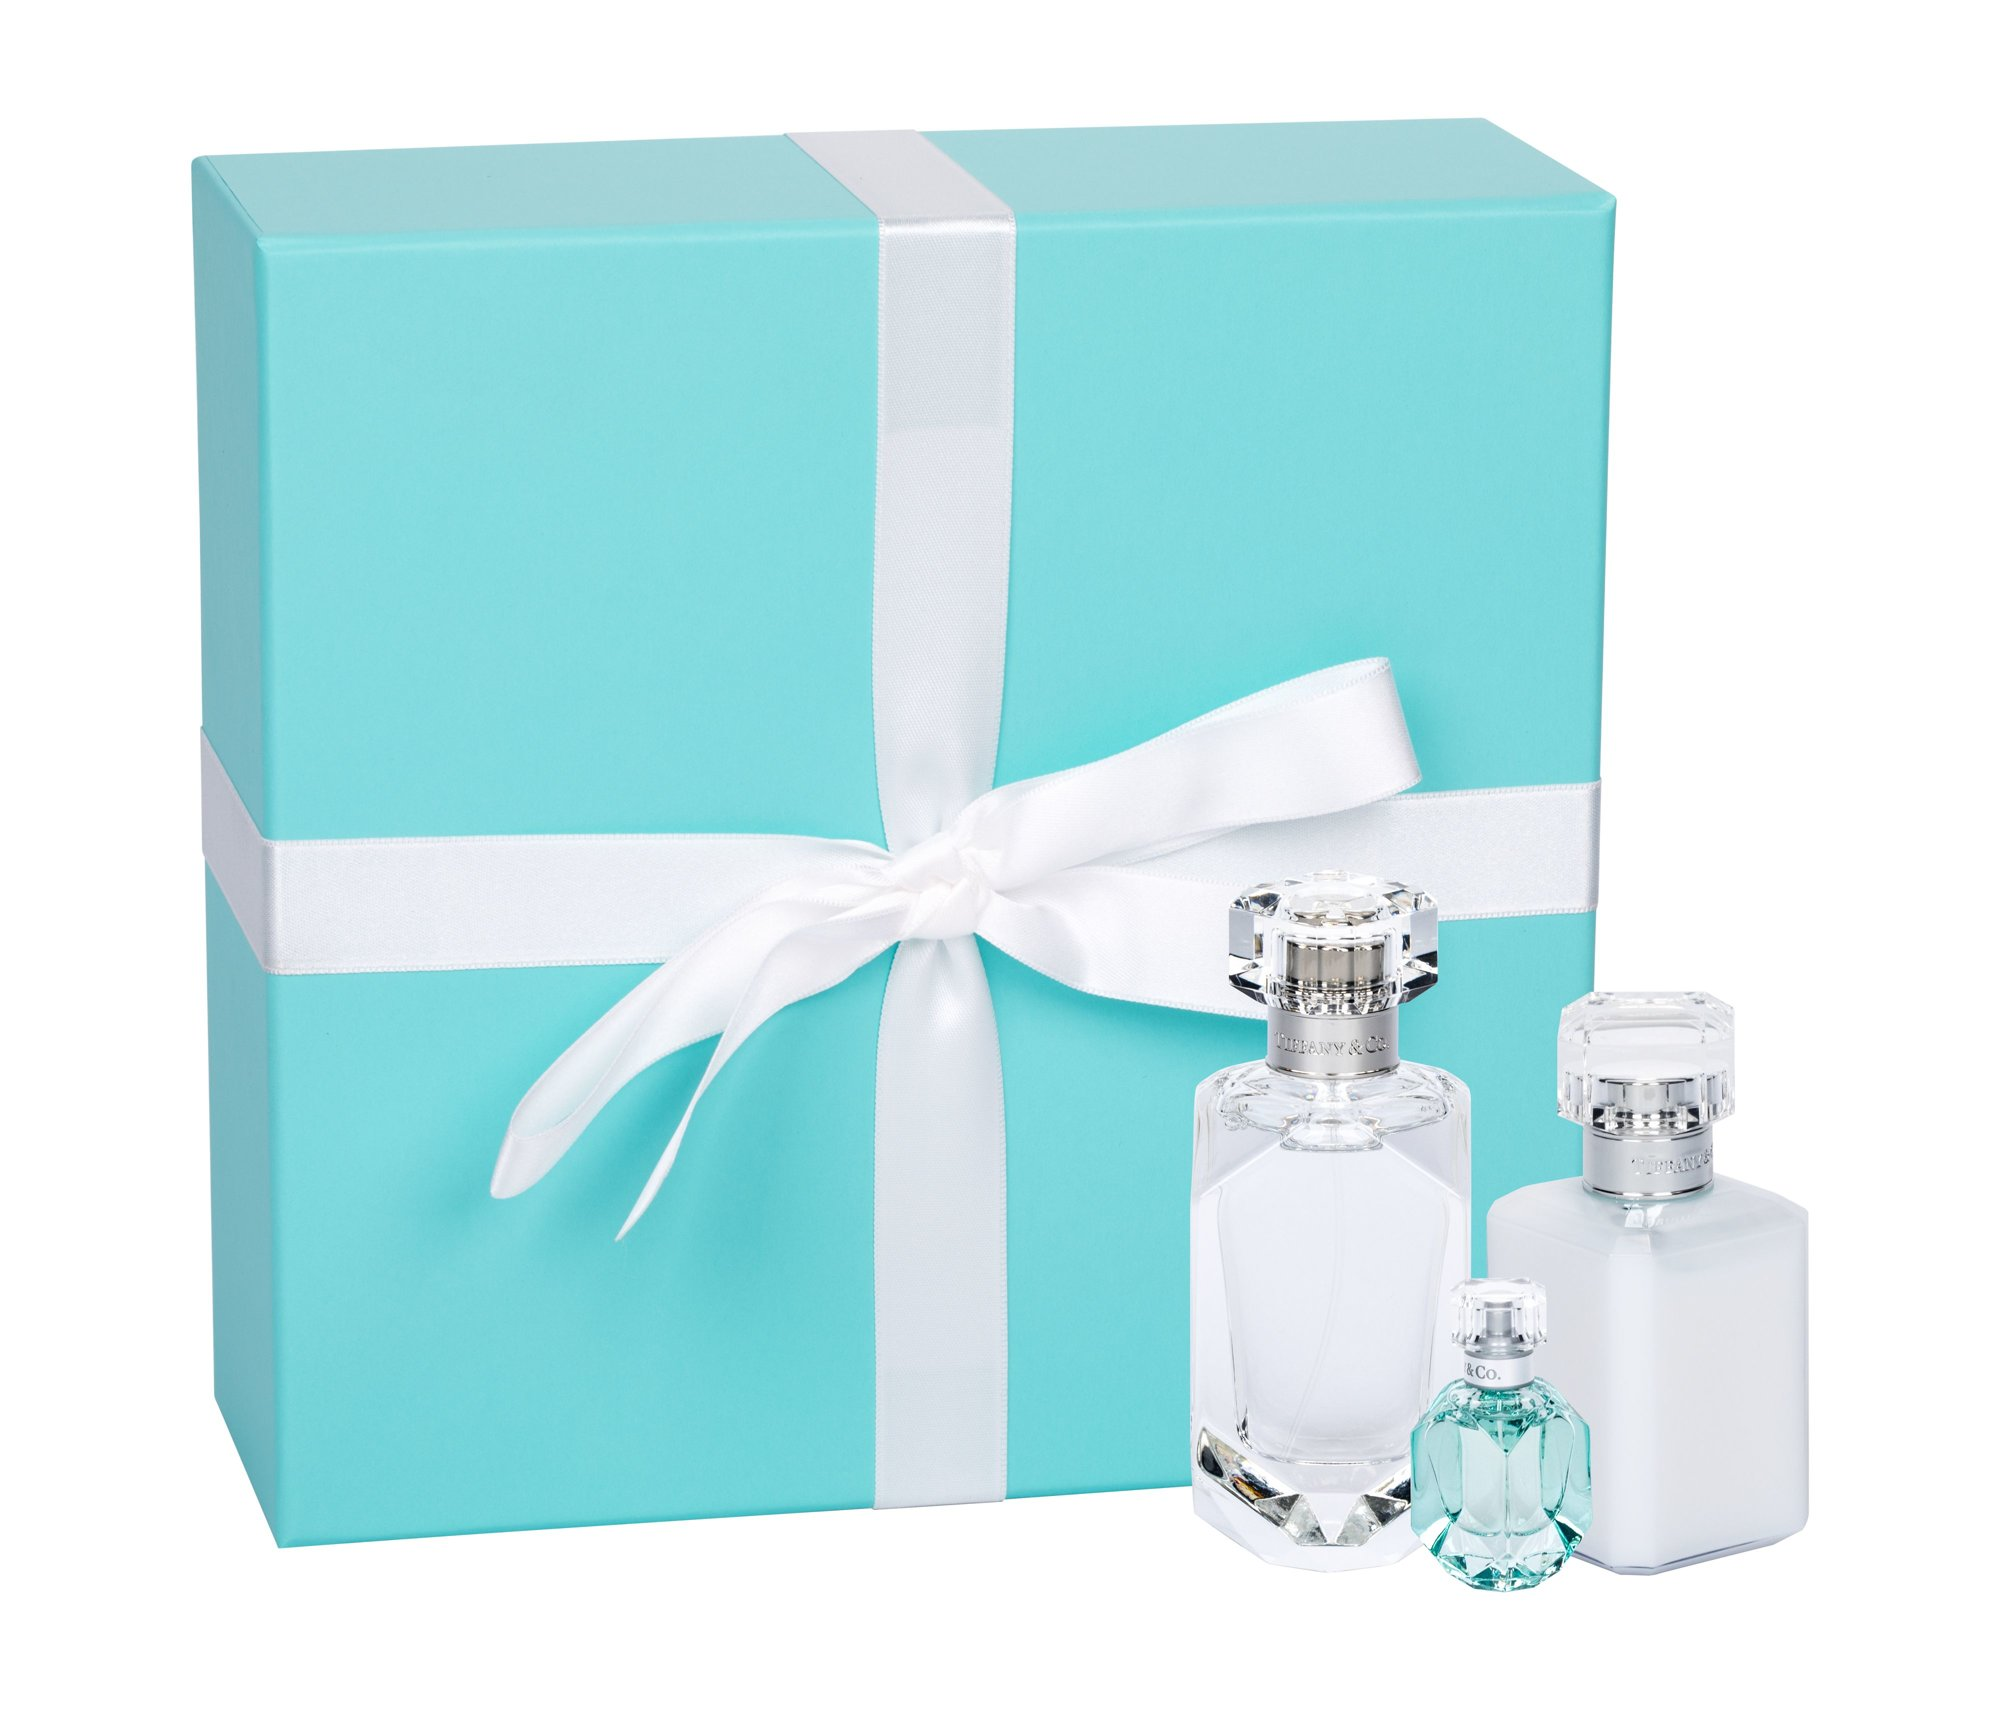 Tiffany & Co. Tiffany & Co. Eau de Toilette 75ml